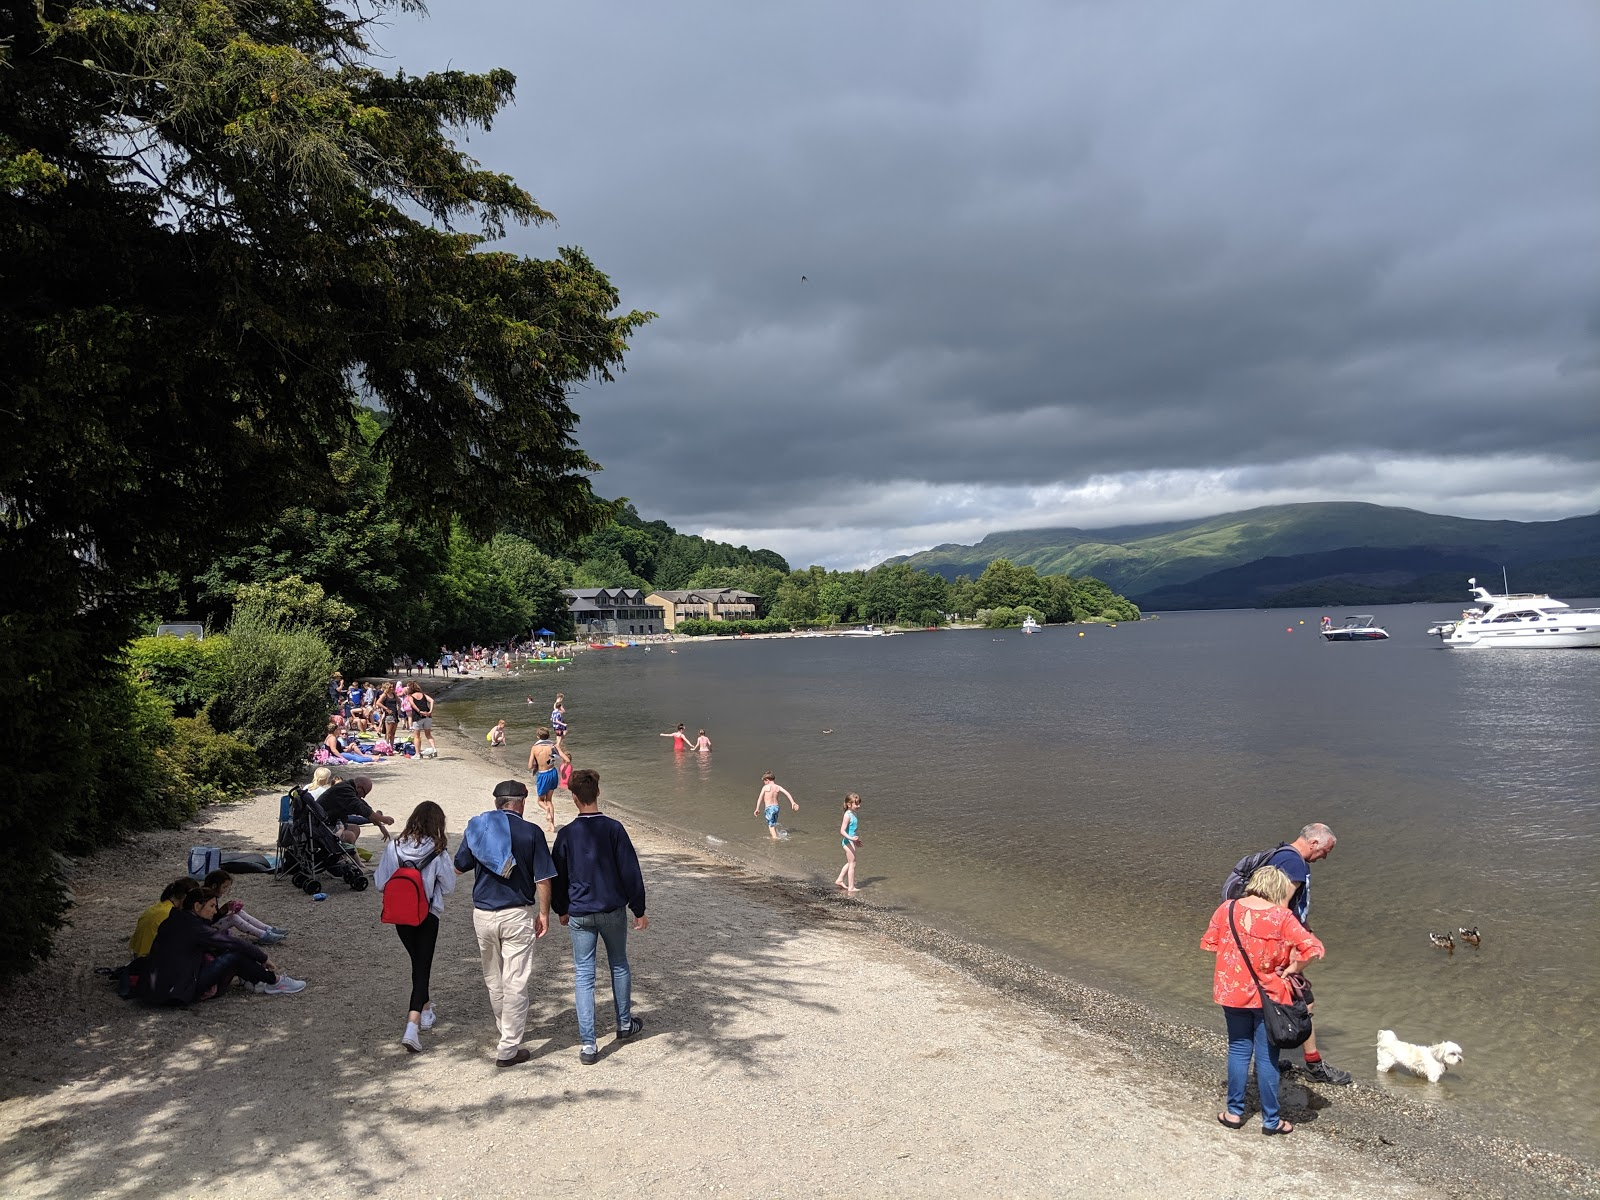 A Short Break at Cameron Lodges, Loch Lomond - Luss - beach and paddling in the loch